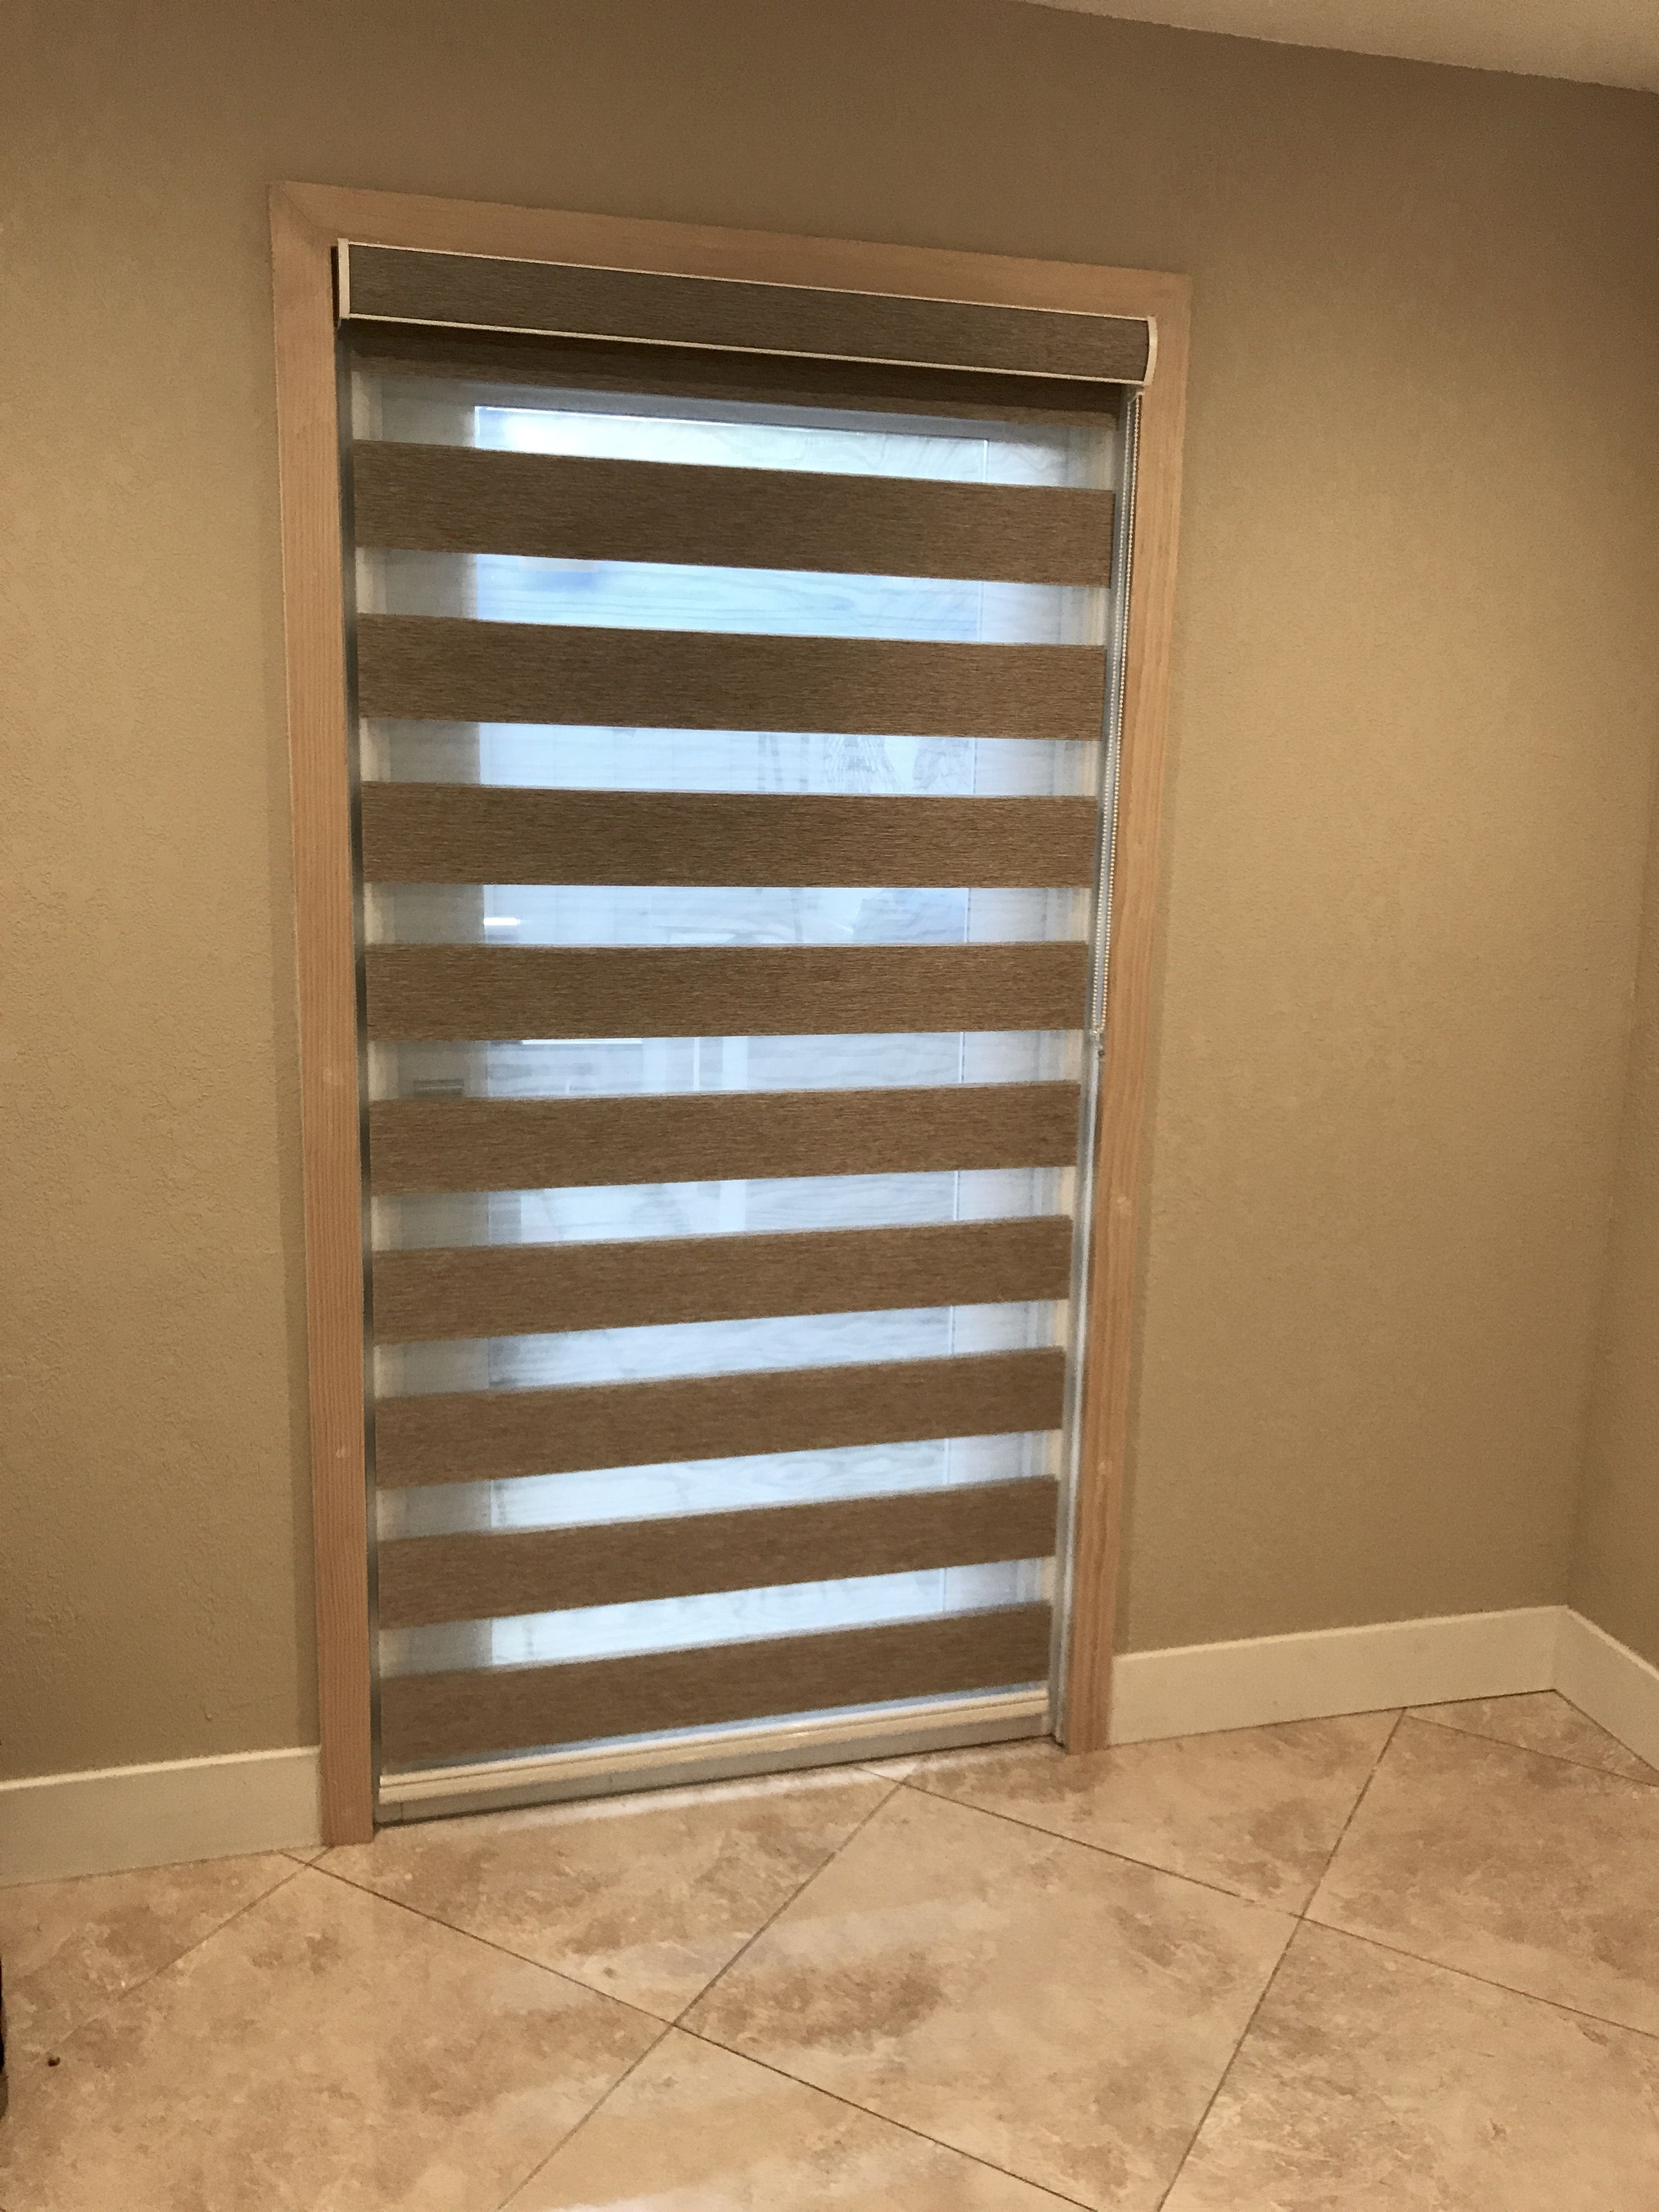 patio door accordion outdoor shades roll roman for ideas wood faux stunning french doors interior wooden window up lowes covering alluring blinds